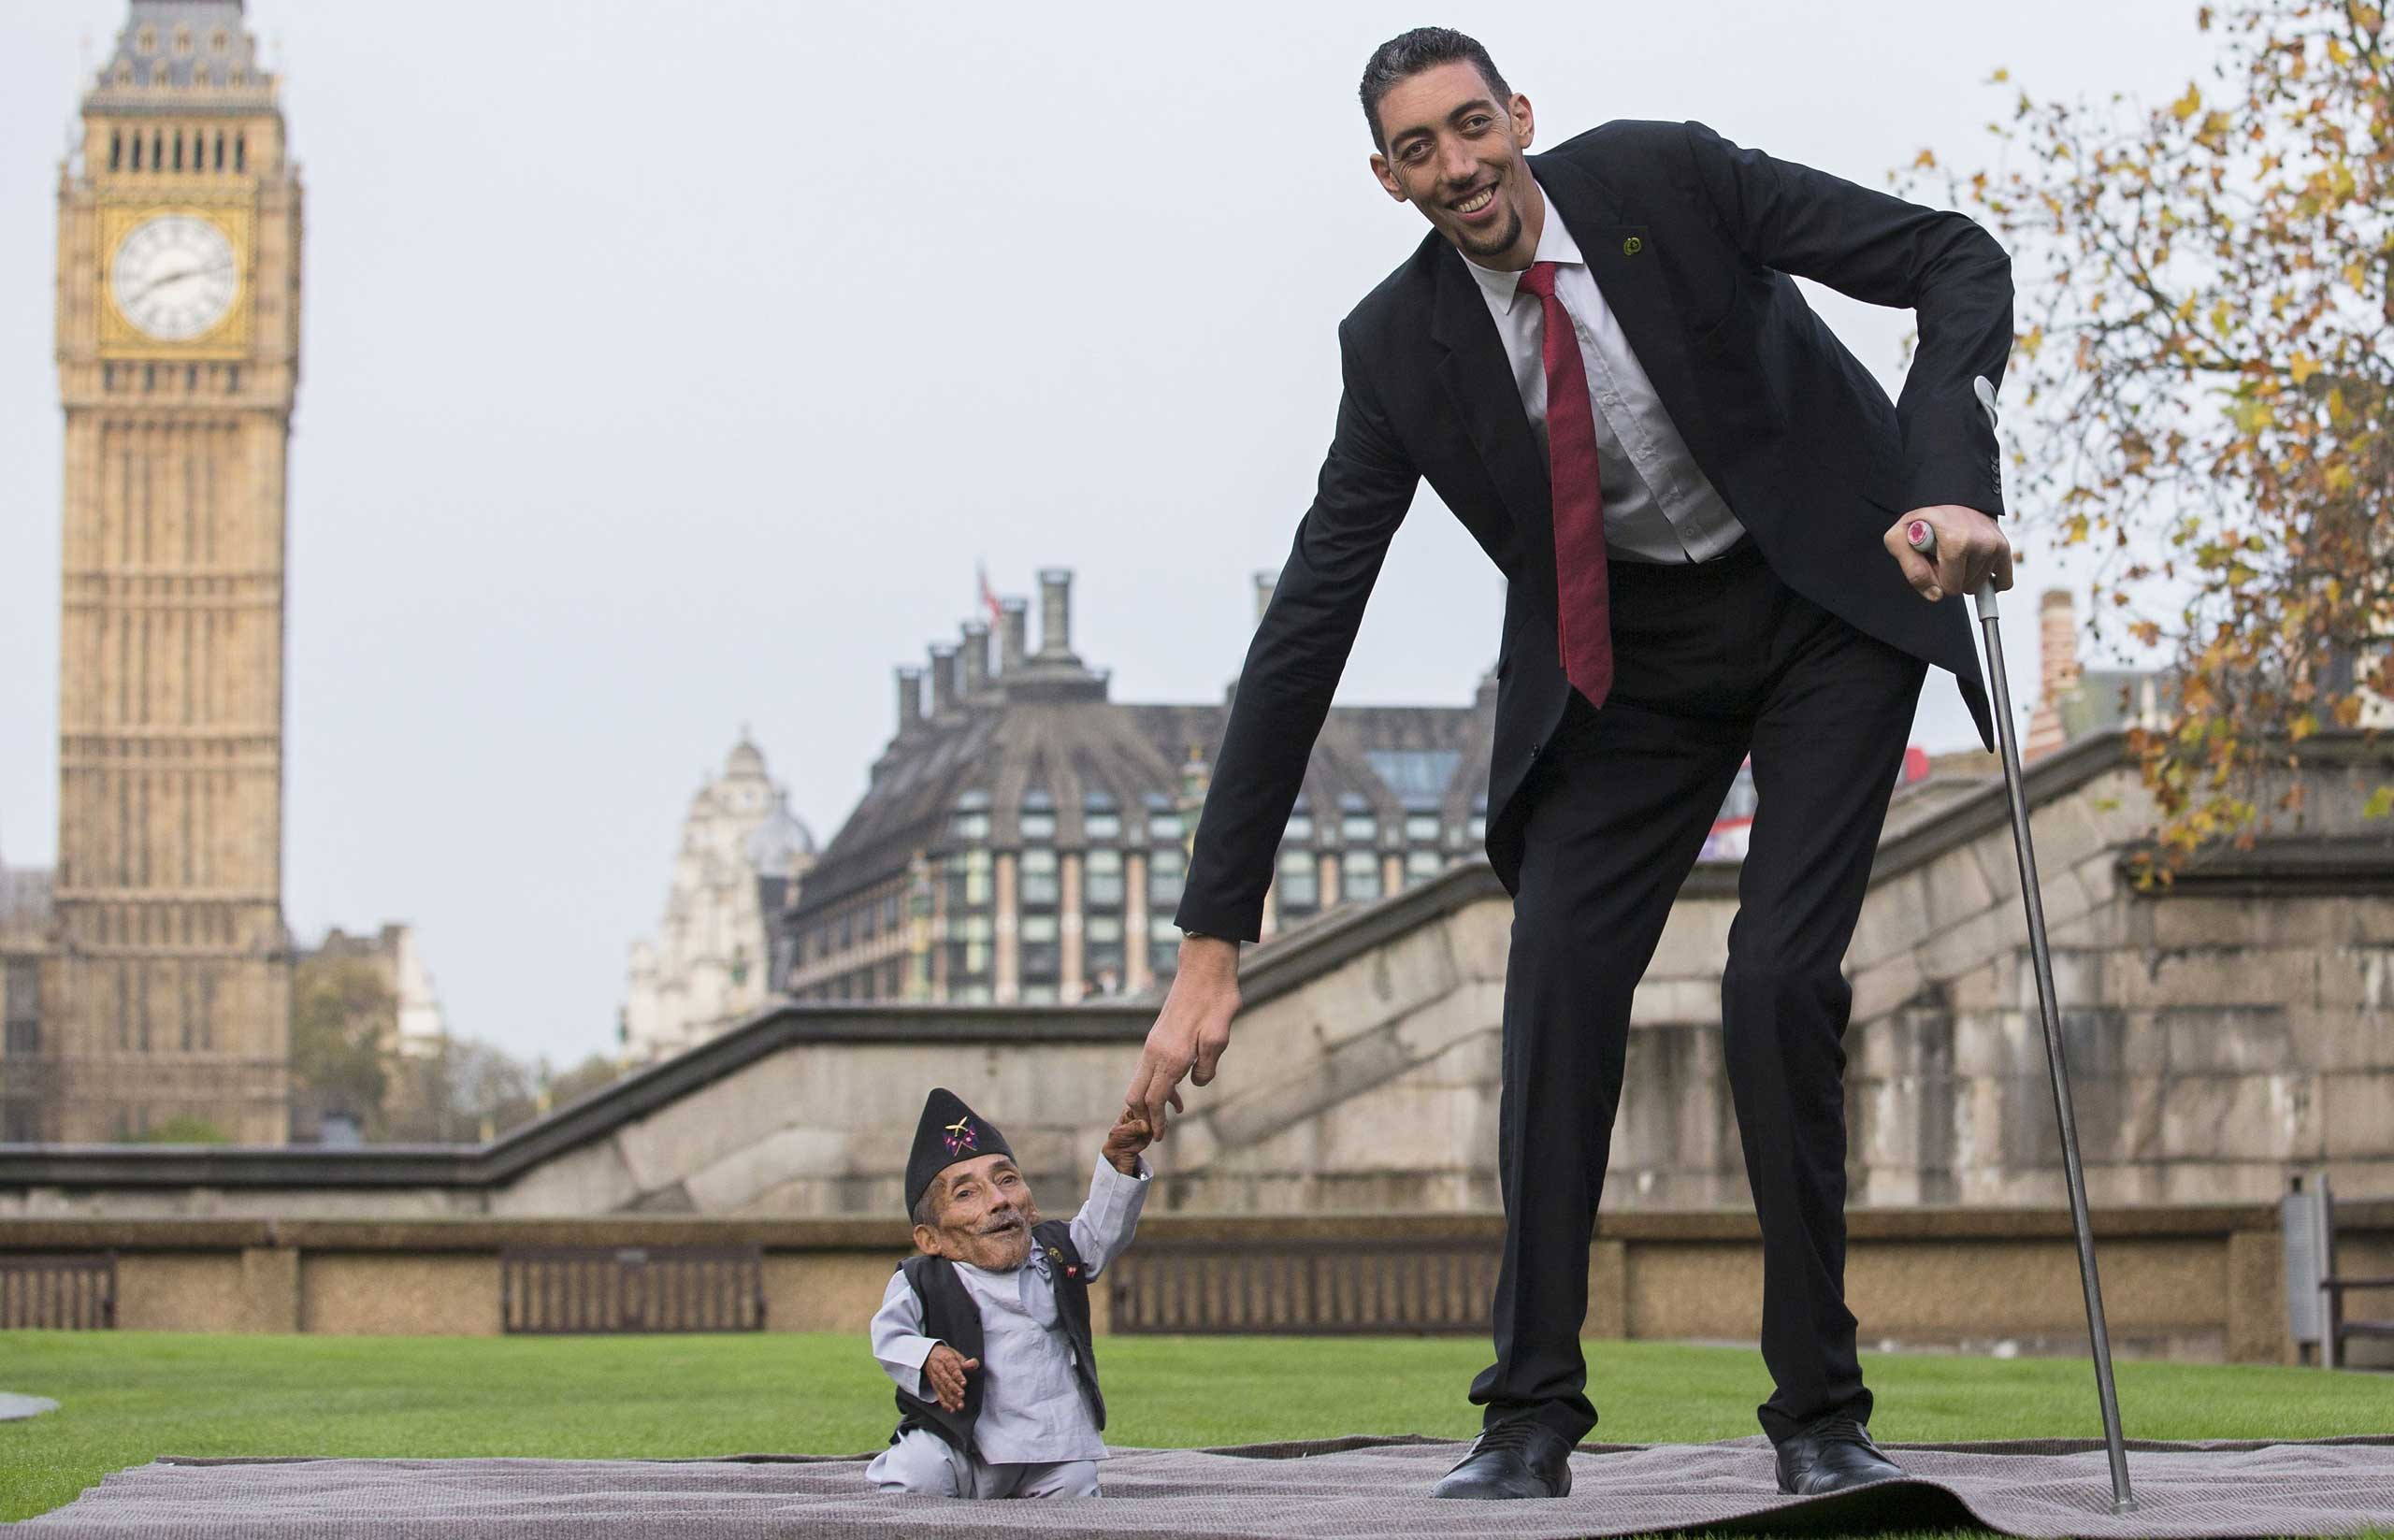 Chandra Bahadur Dangi, from Nepal, the shortest adult to have ever been verified by Guinness World Records, poses for pictures with the world's tallest man Sultan Kosen from Turkey, during a photocall in London on Nov. 13, 2014, to mark Guinness World Records Day.